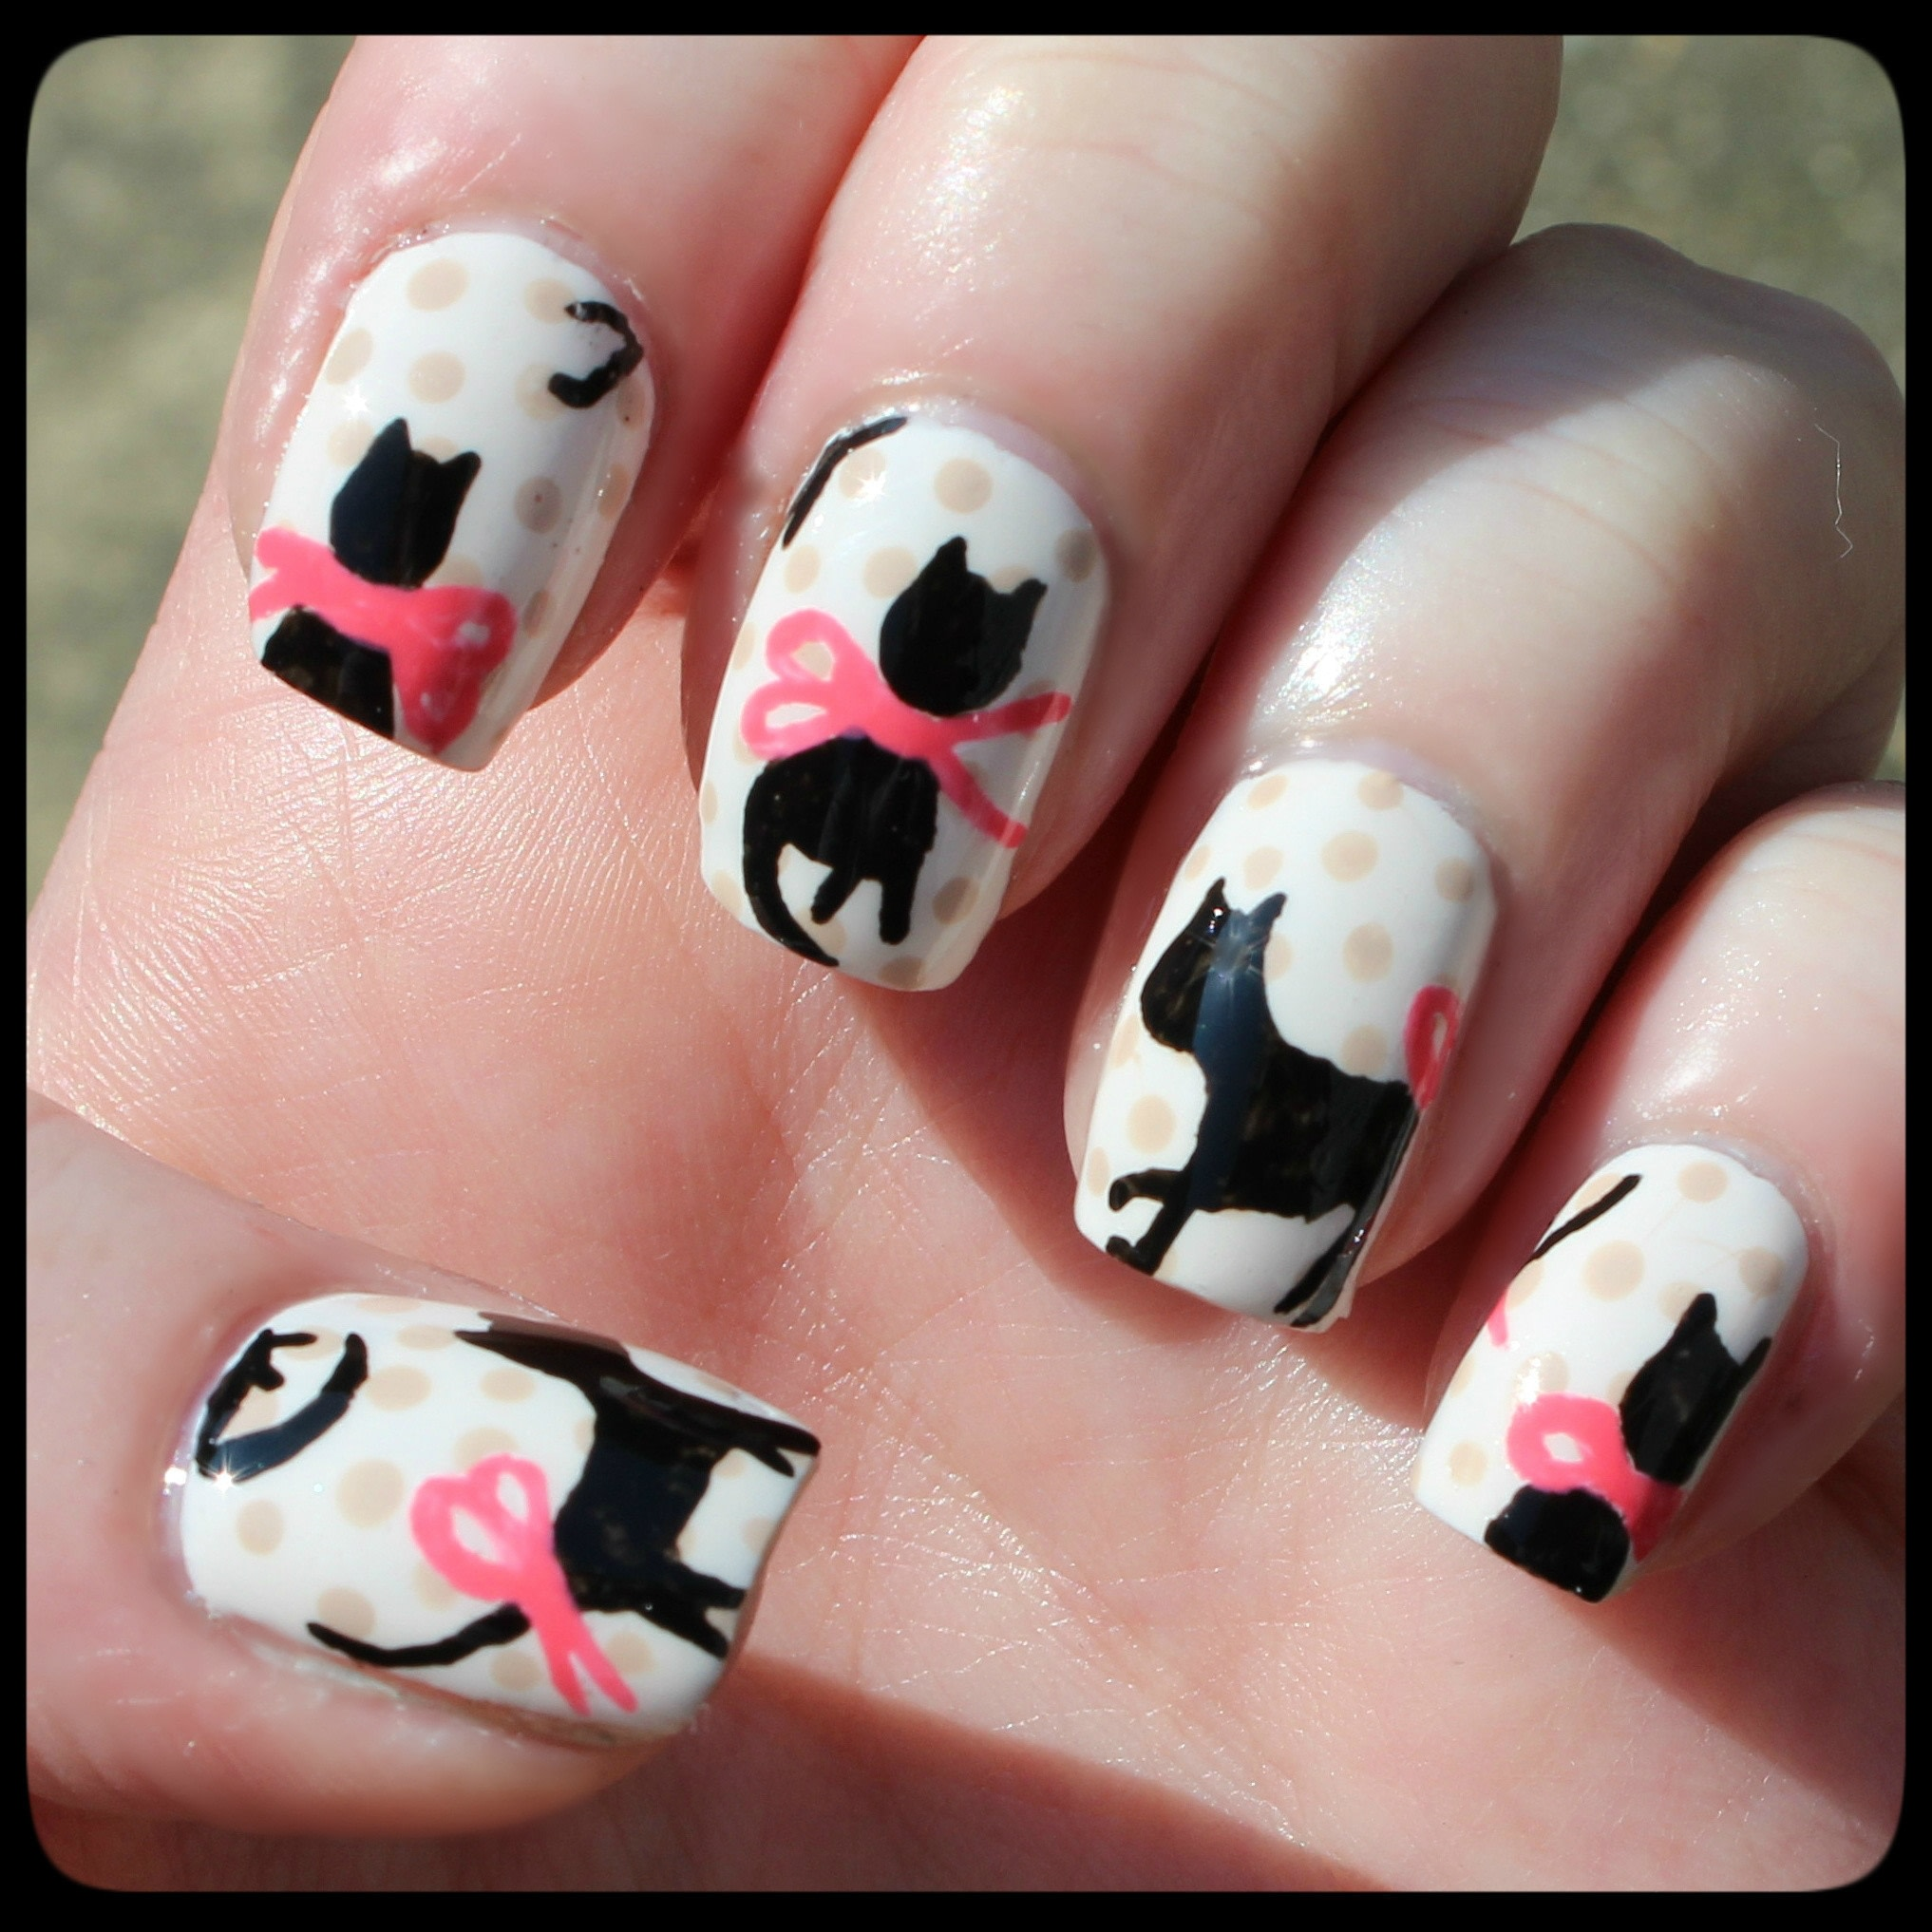 Cat Blouse Nail Art How To Paint An Animal Beauty On Cut Kitty Brush 5 In 1